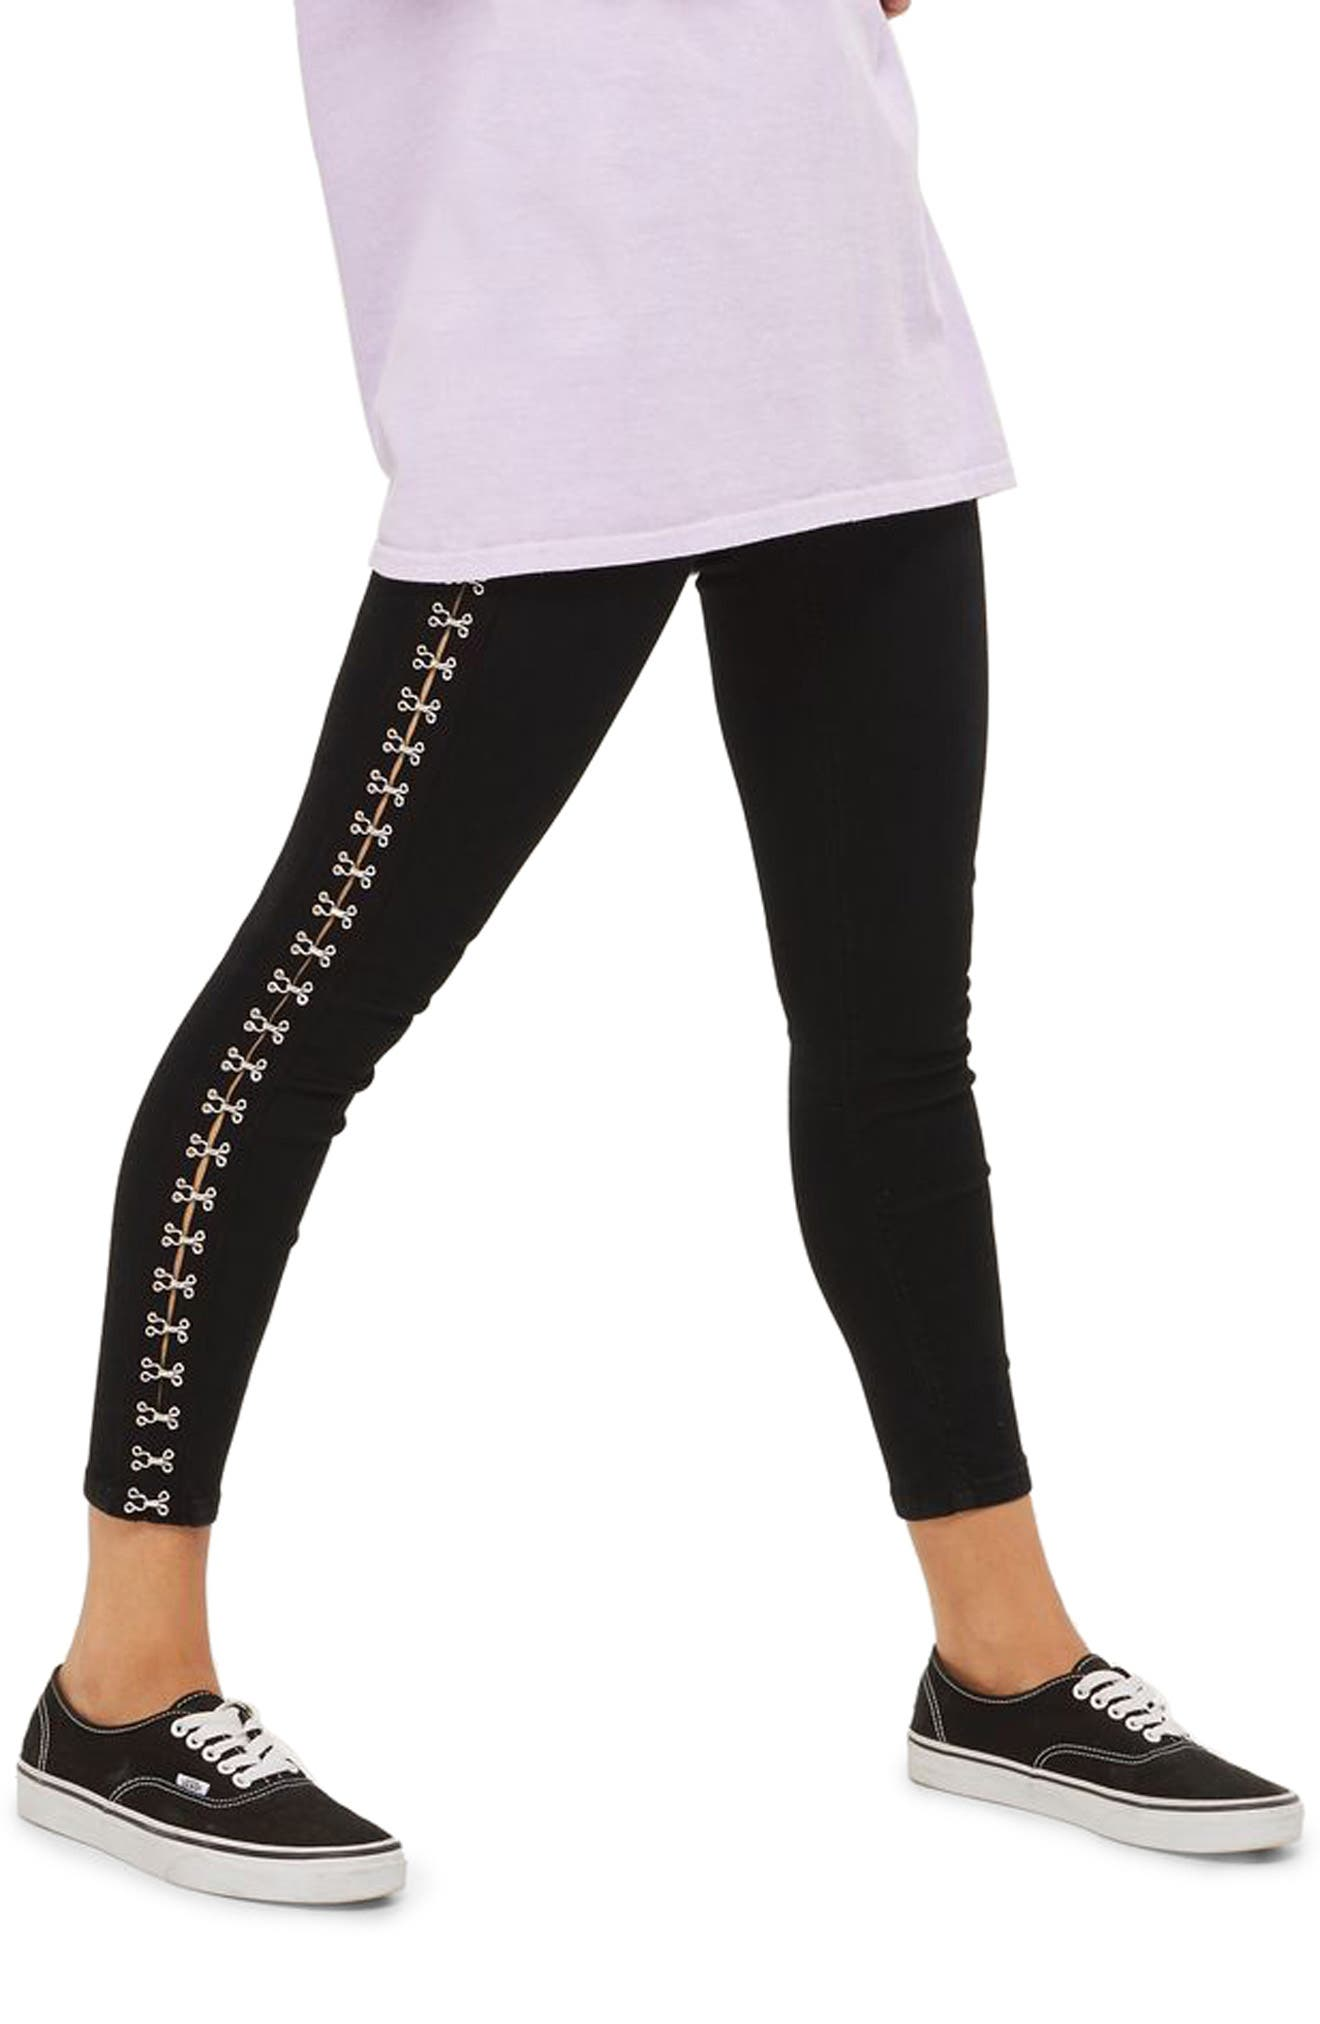 Topshop Joni Hook & Eye High Rise Super Skinny Jeans